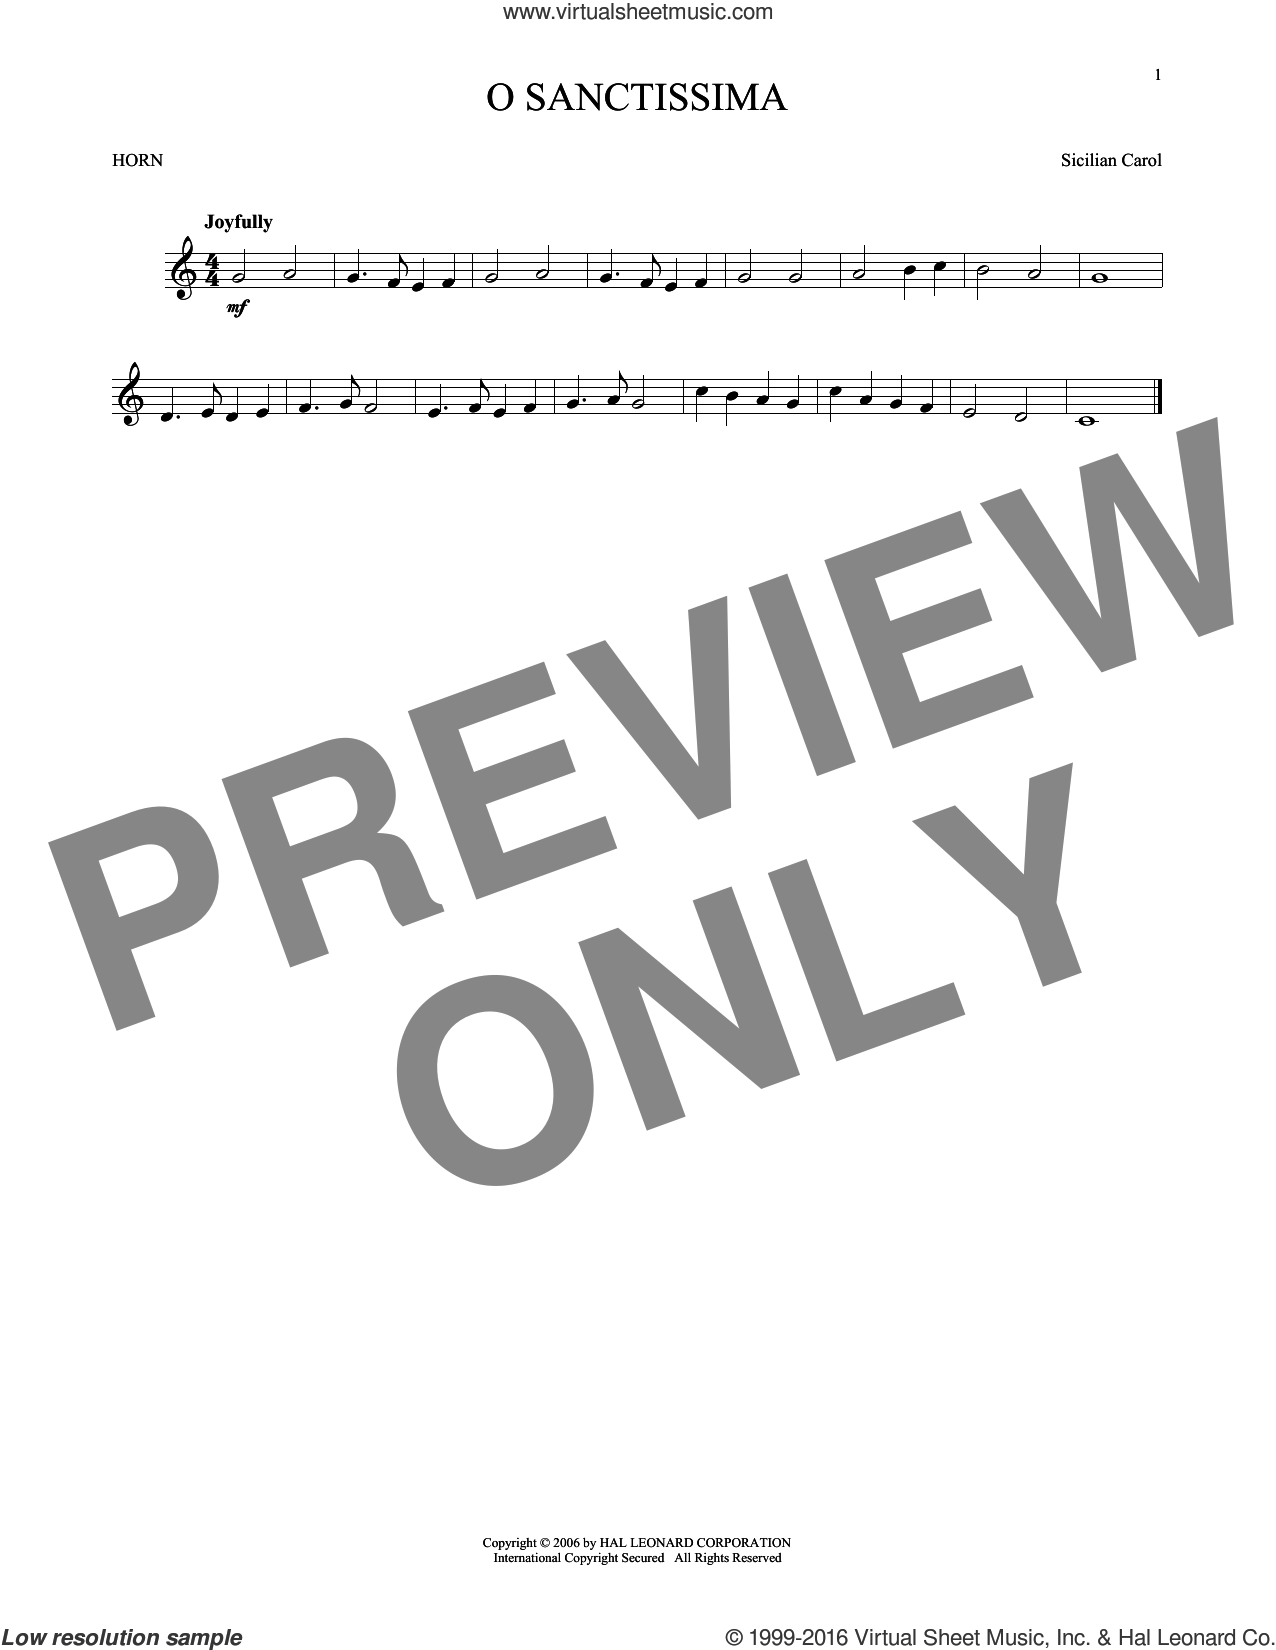 O Sanctissima sheet music for horn solo. Score Image Preview.